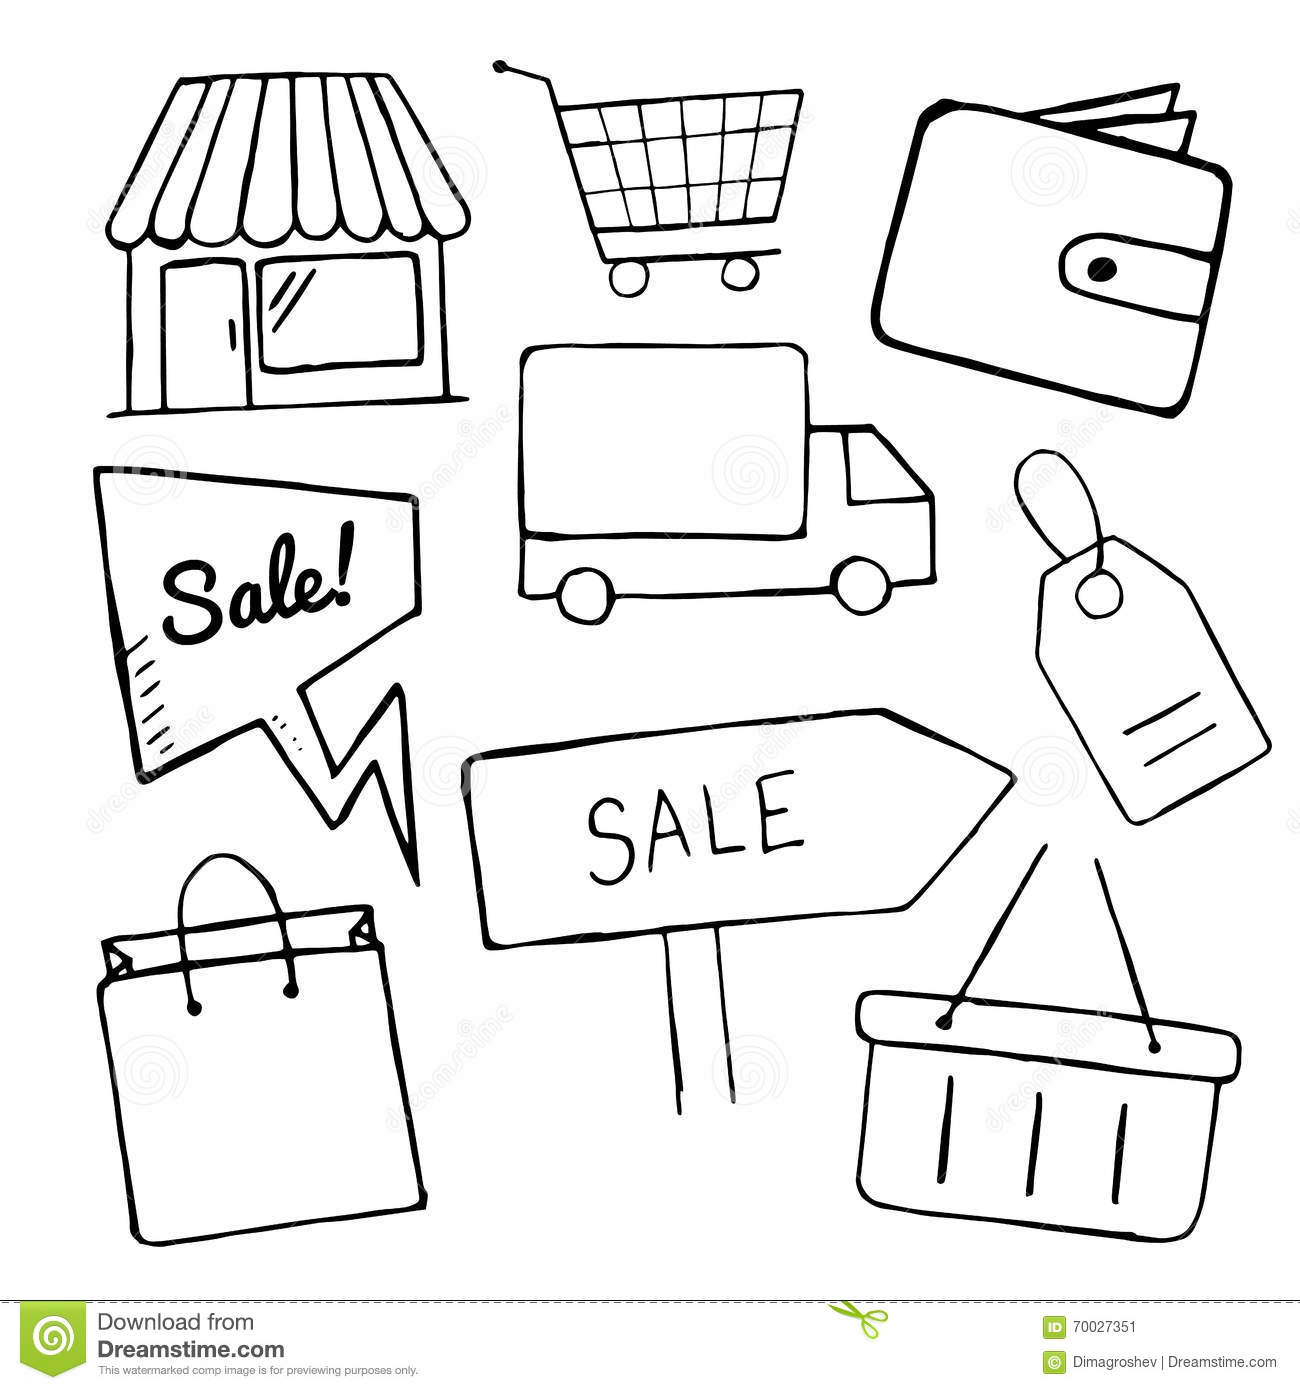 Set Of Business Doodle Icons Shopping Icons For Design Hand Drawn Shop Sale Shopping Bag